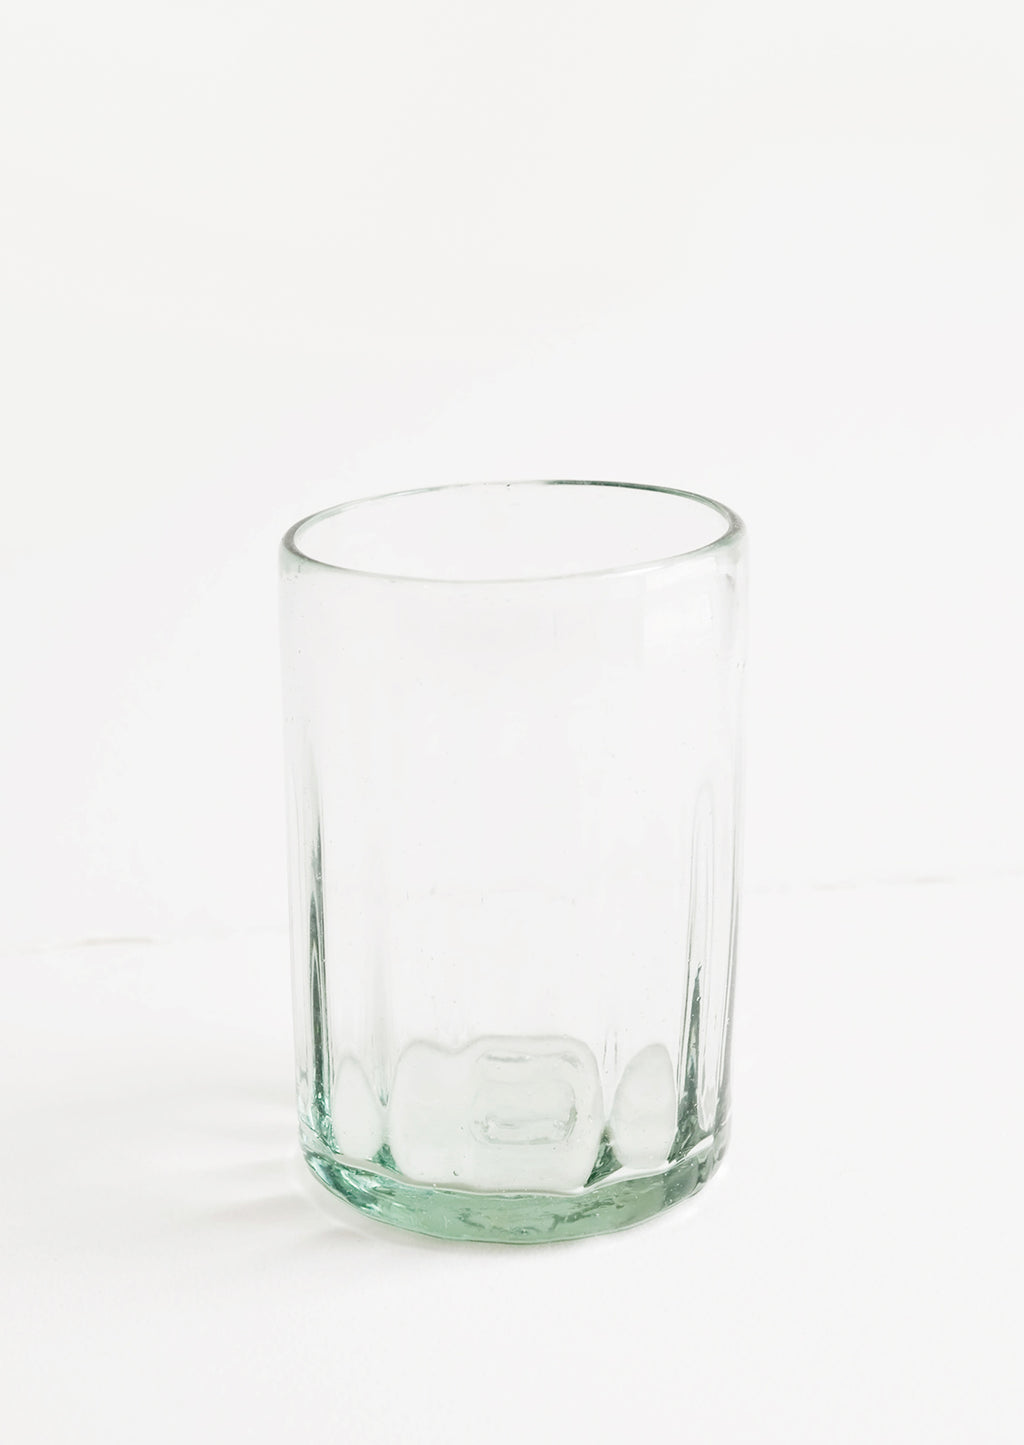 Wide [$16.00]: A horizontally ribbed tumblers in thick green hued glass.